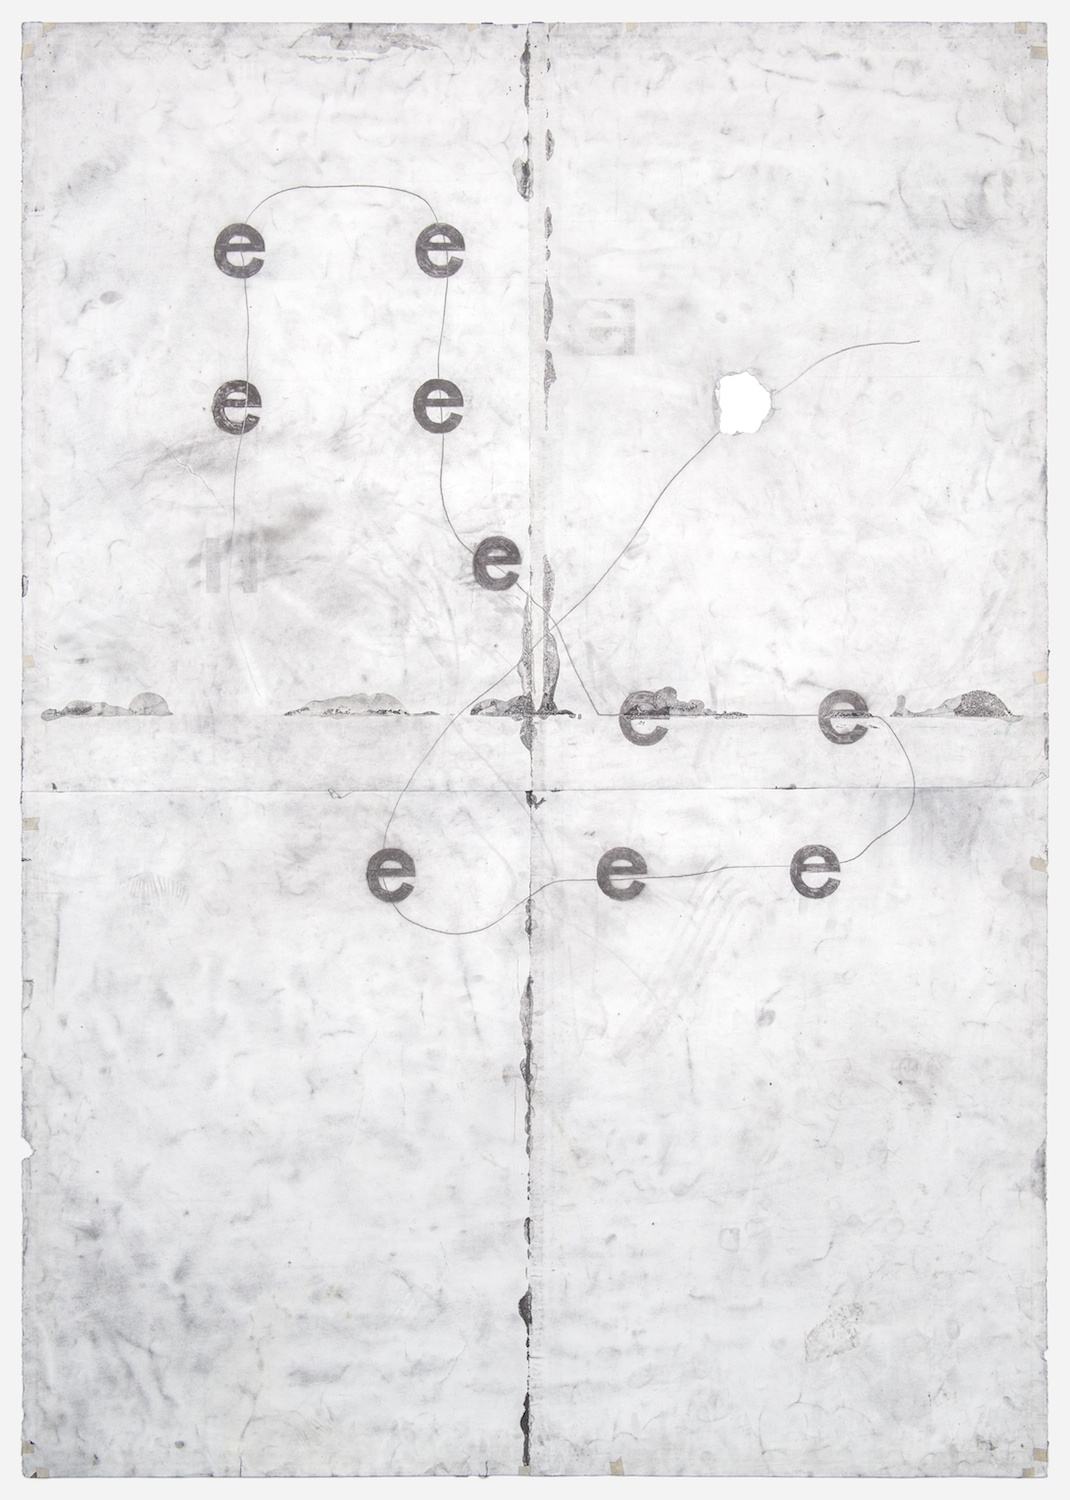 Tony Lewis  e e e e e e e e e e  2011 Pencil and powdered graphite on paper 84h x 60w in TL030